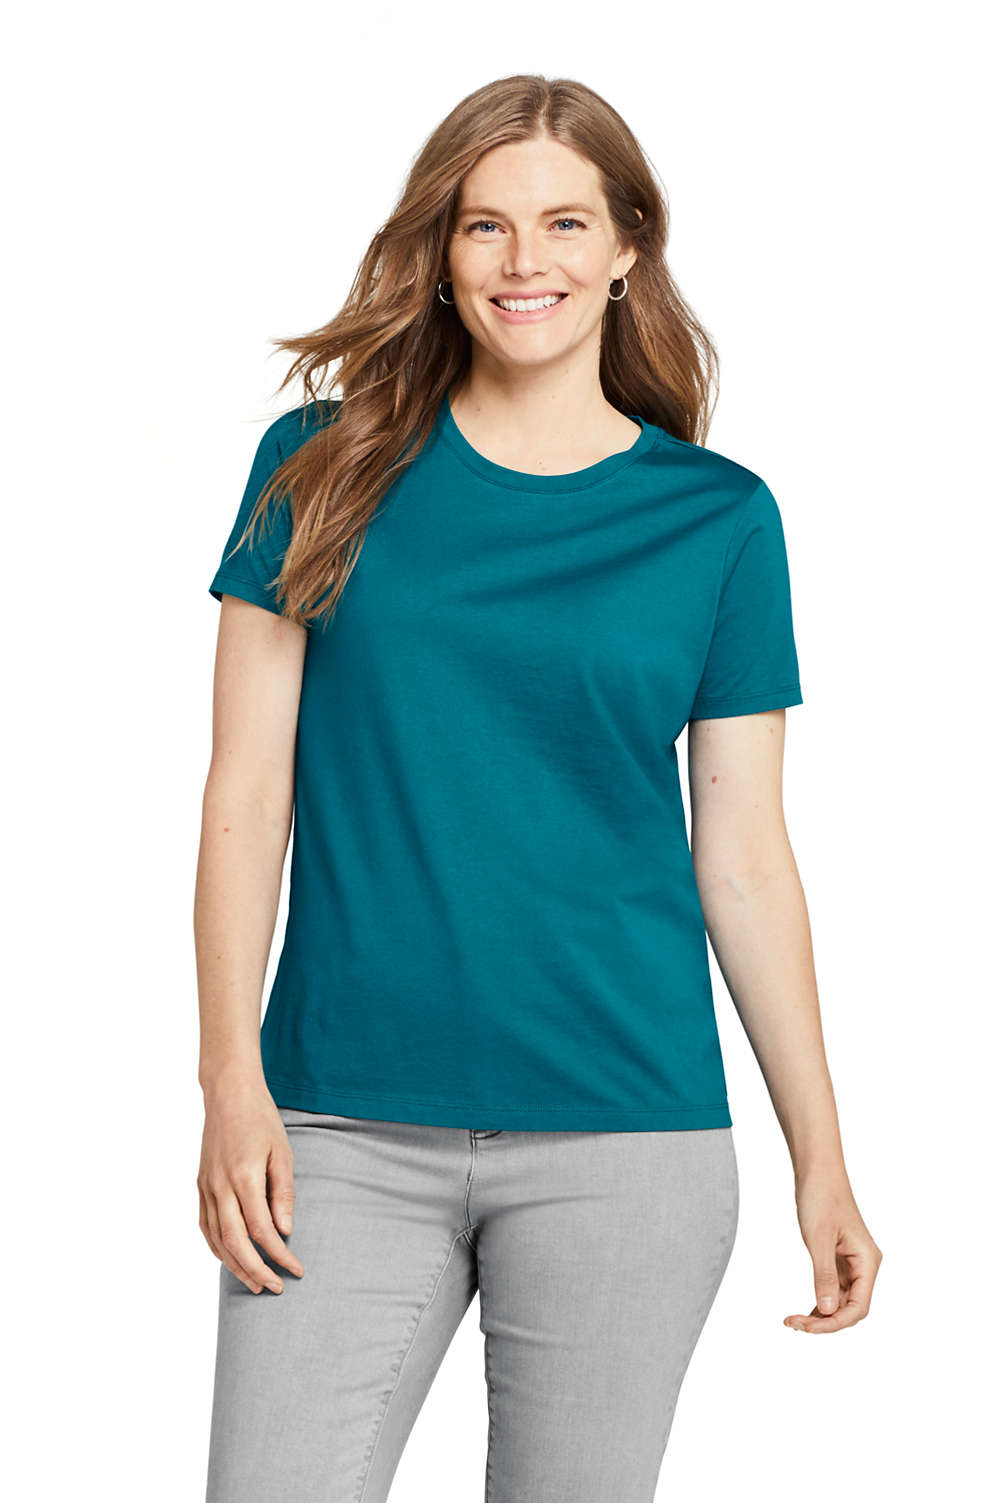 0d6348a6098e Women's Relaxed Supima Cotton Short Sleeve Crewneck T-Shirt from Lands' End